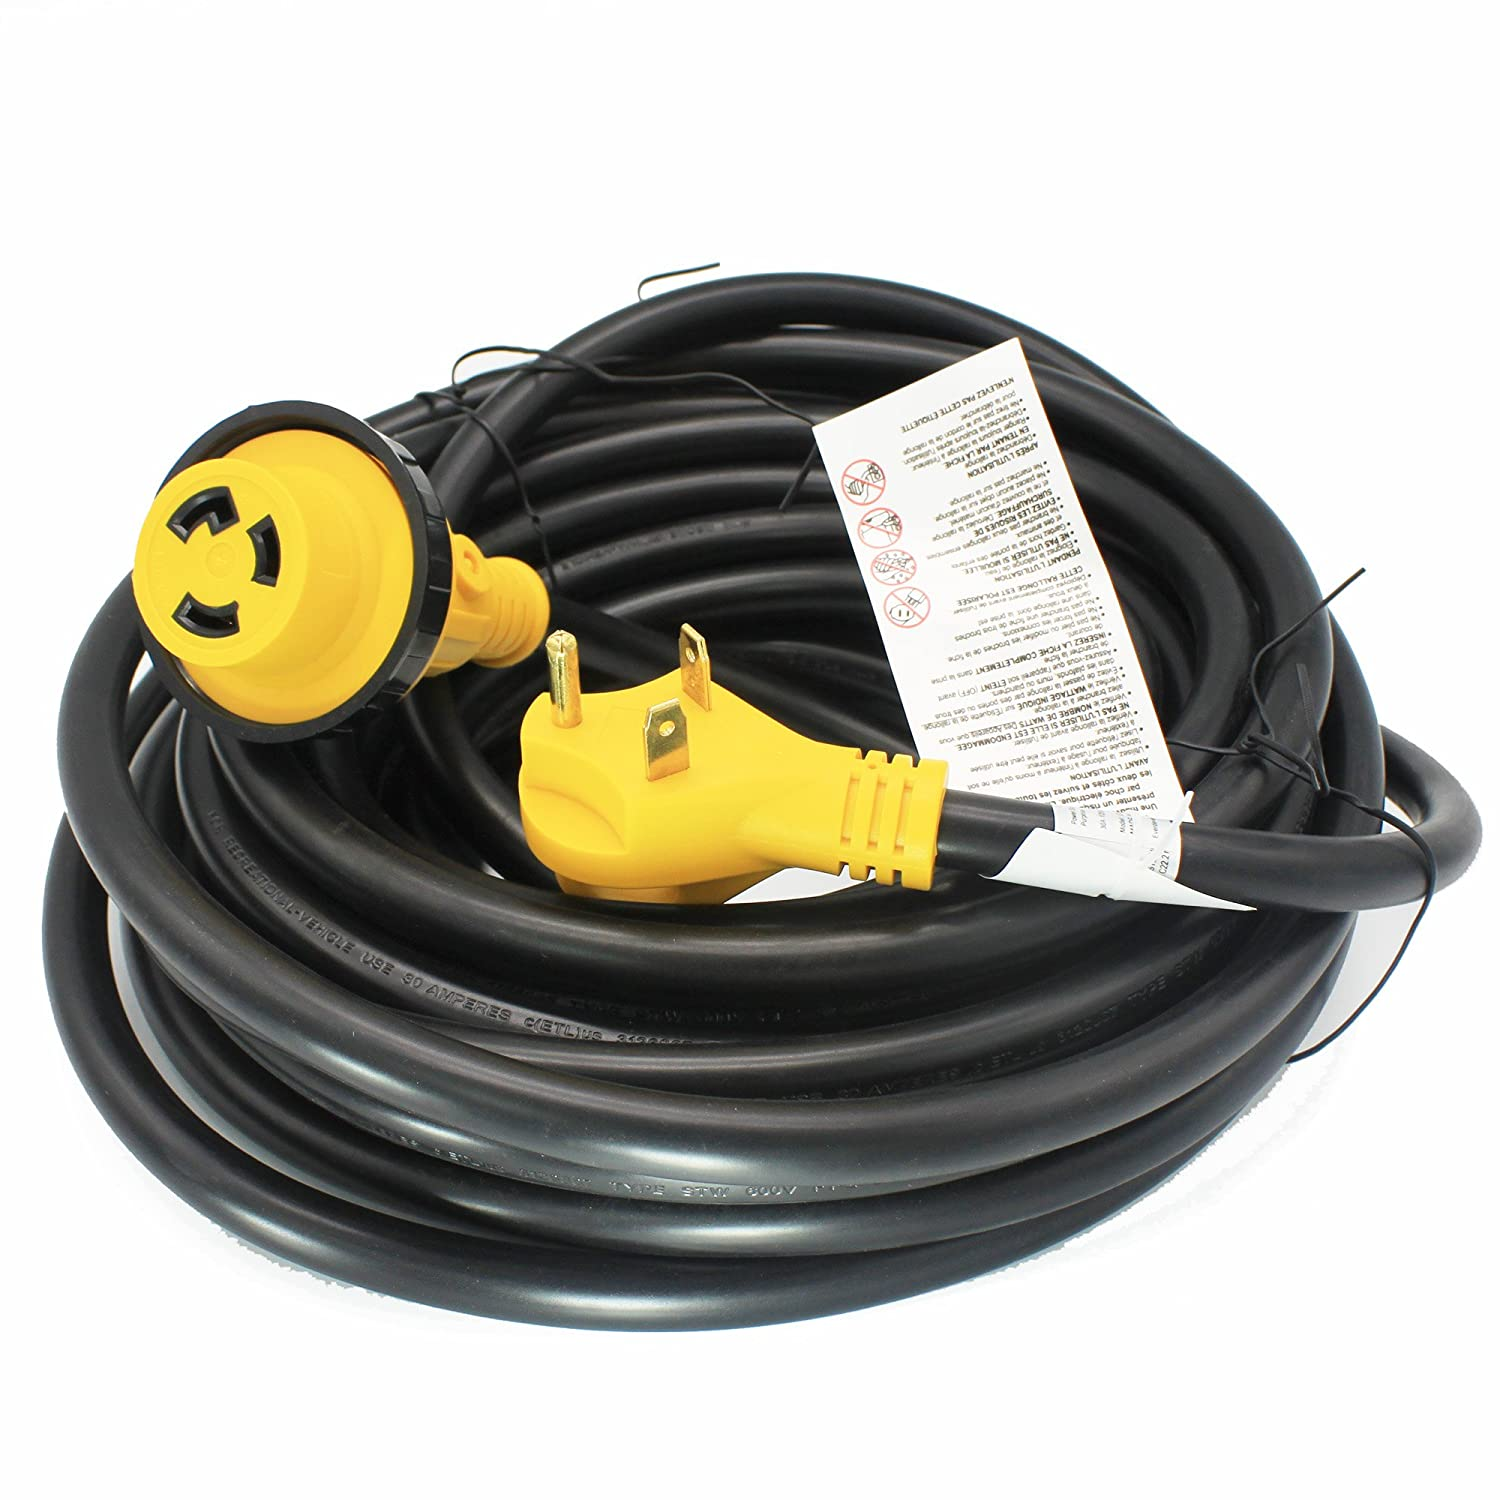 Details About Whirlpool Pt220l 4feet 3 Wire 30amp Dryer Power Cord